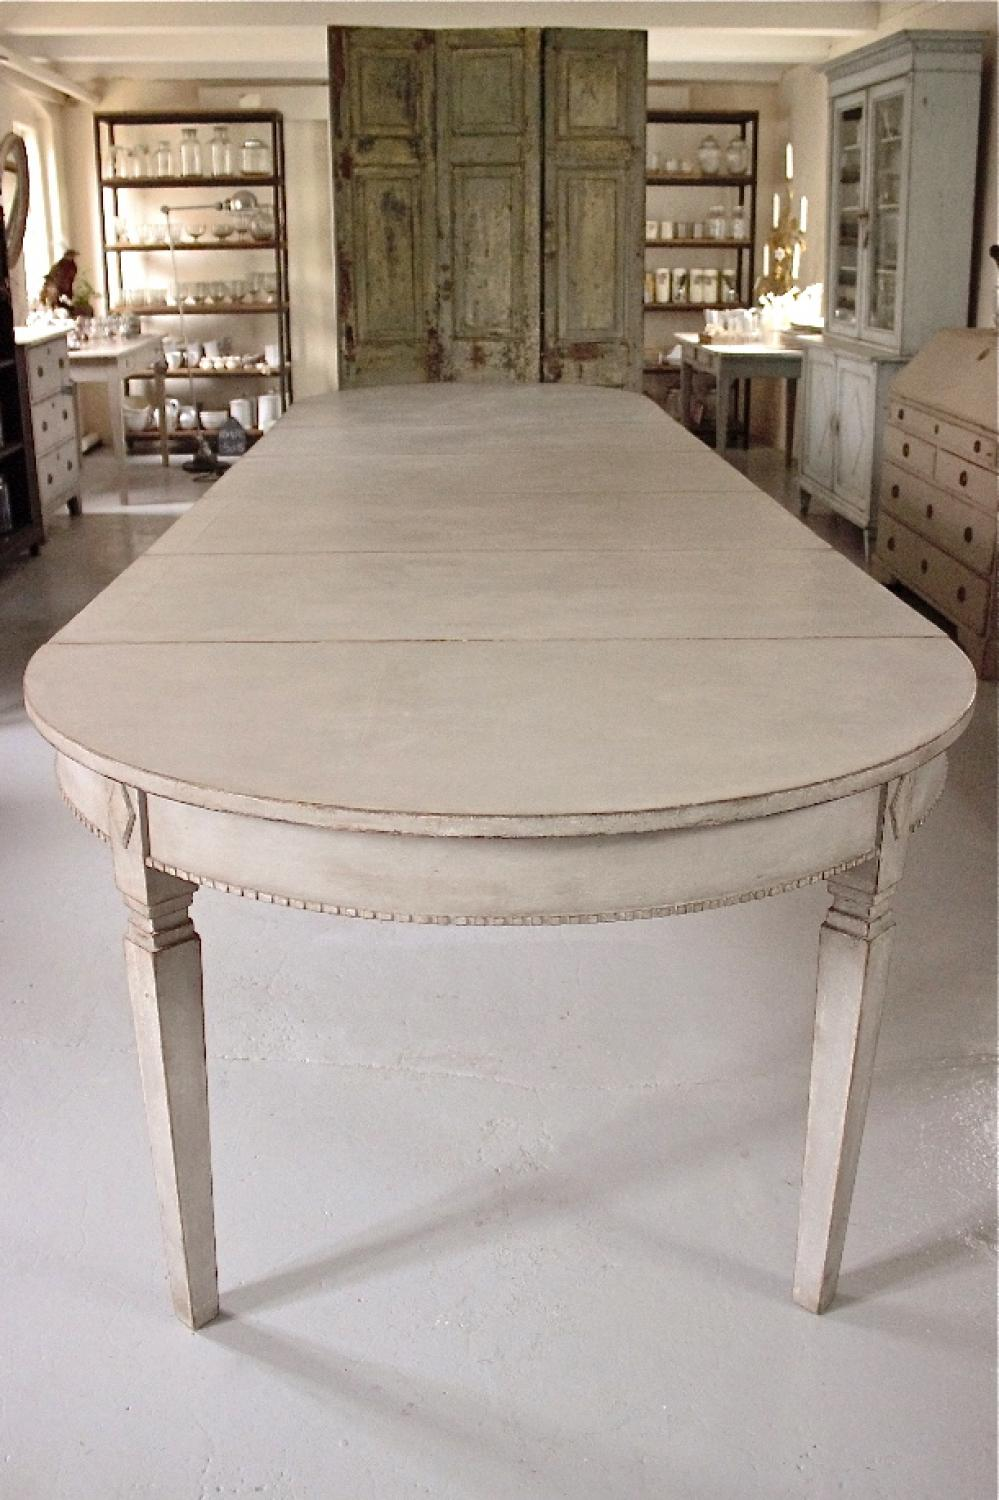 HUGE SWEDISH GUSTAVIAN STYLE EXTENSION TABLE In FURNITURE